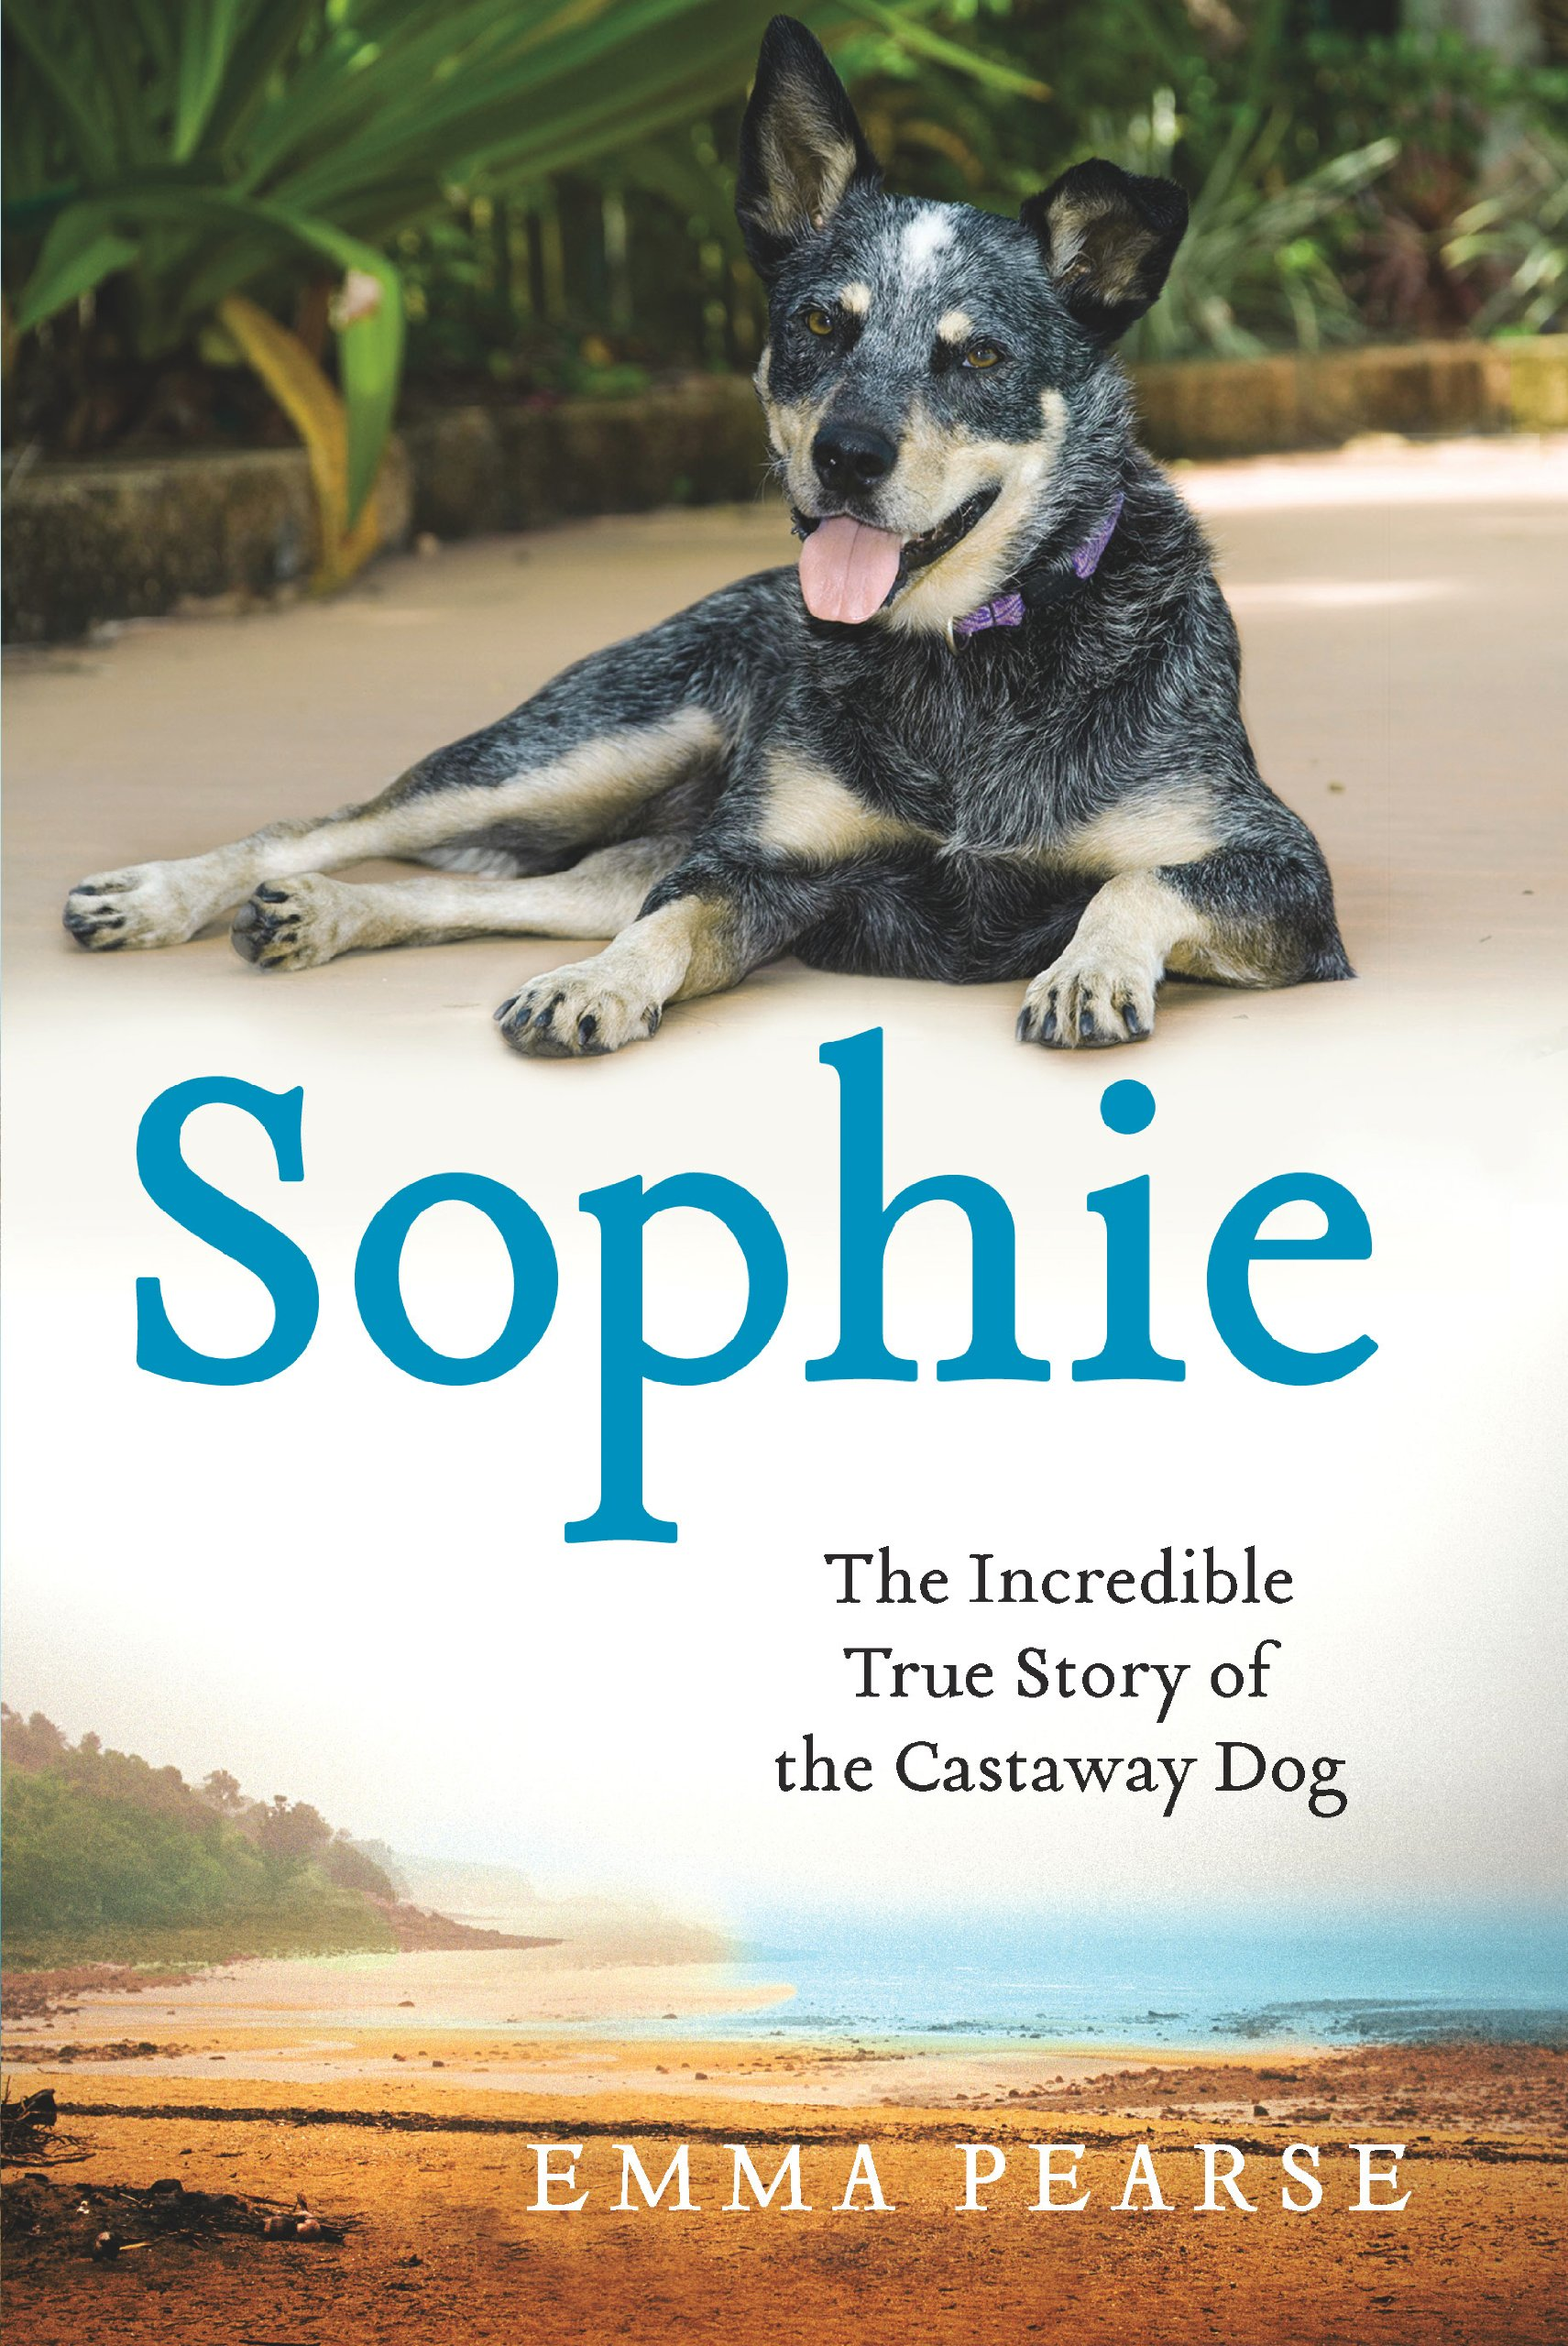 Sophie: The Incredible True Story of the Castaway Dog (Thorndike Press Large Print Nonfiction Series) pdf epub